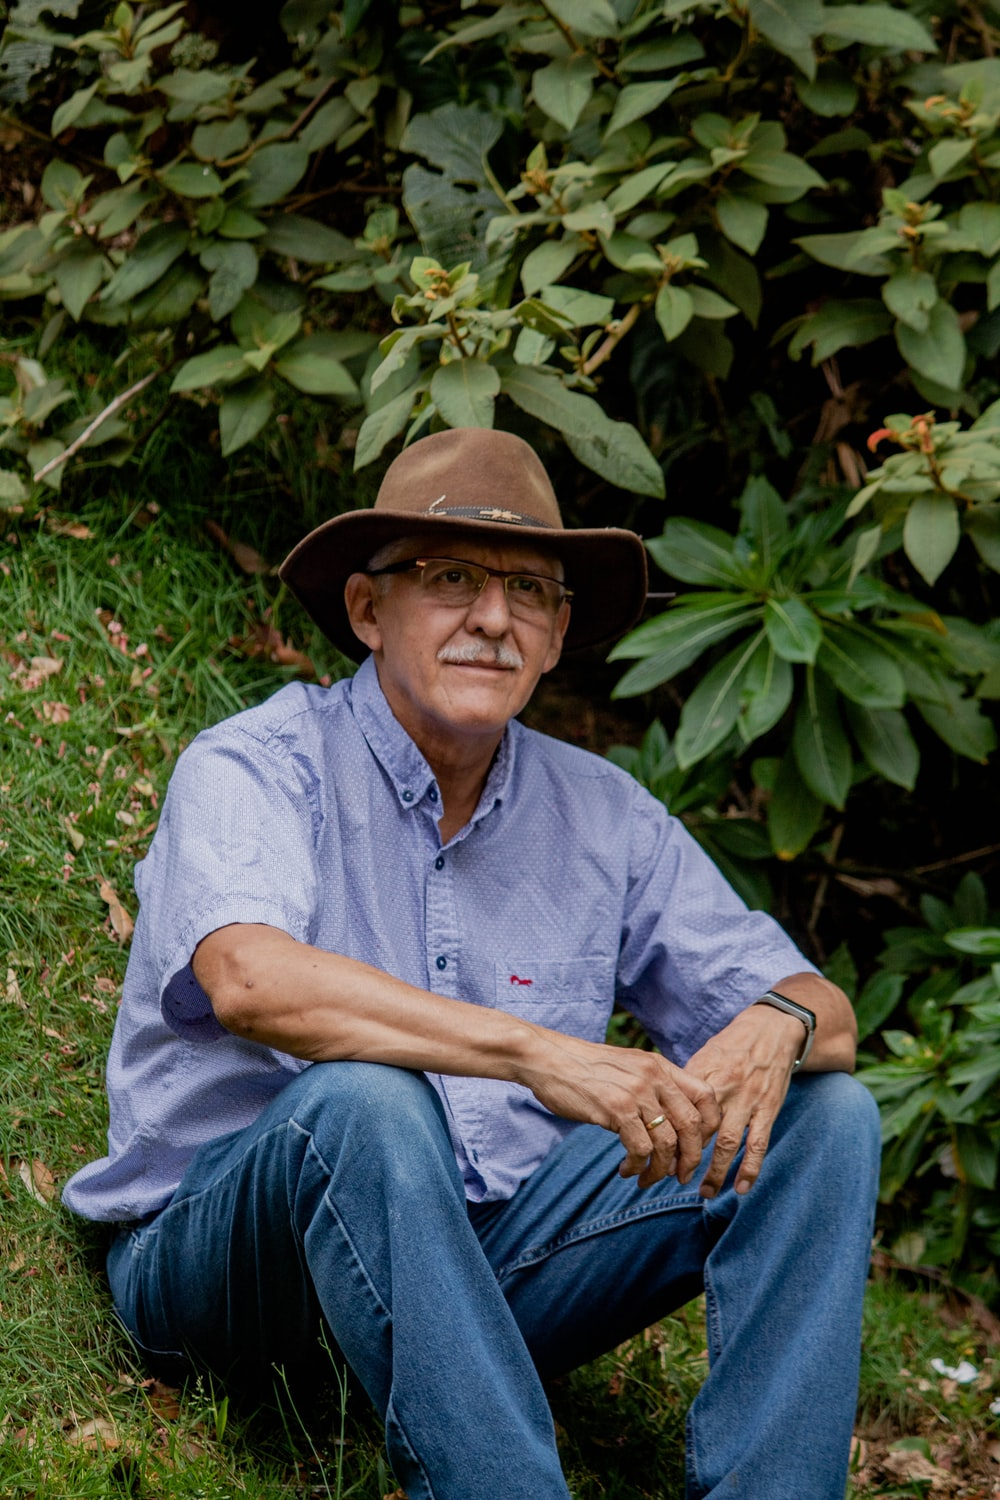 man in blue dress shirt and blue denim jeans wearing brown cowboy hat sitting on green